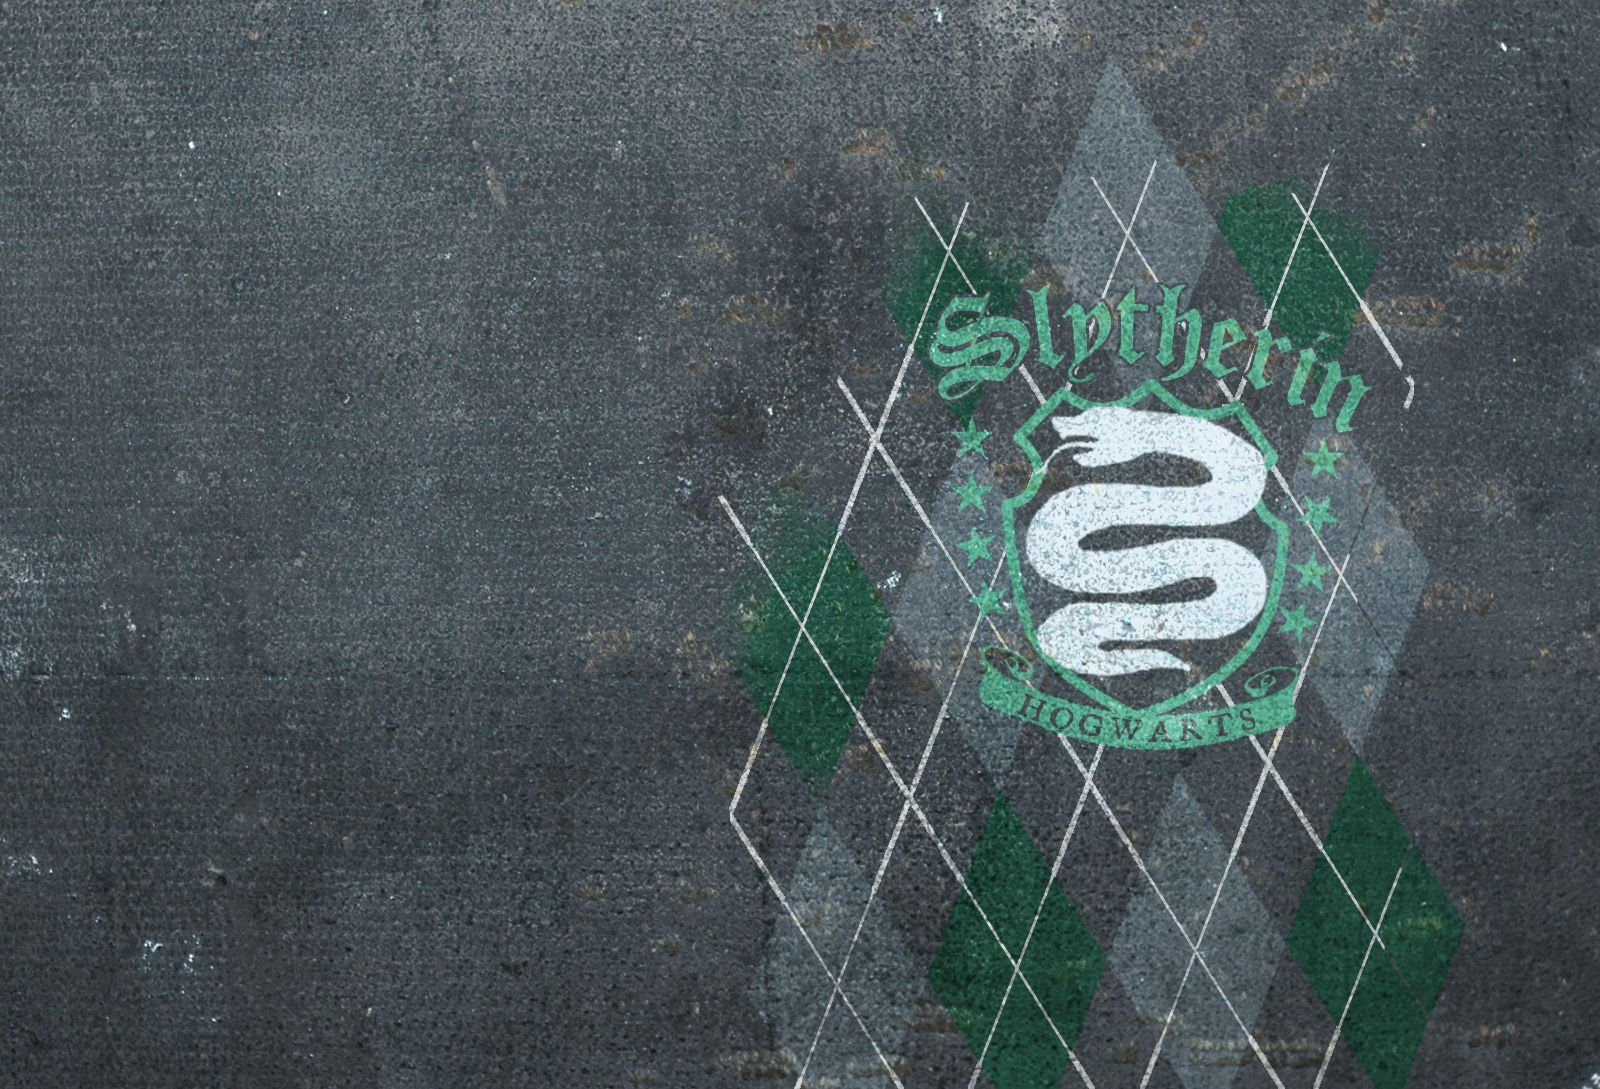 Pin By Vash On Slytherin Pride Slytherin Wallpaper Harry Potter Wallpaper Backgrounds Harry Potter Wallpaper